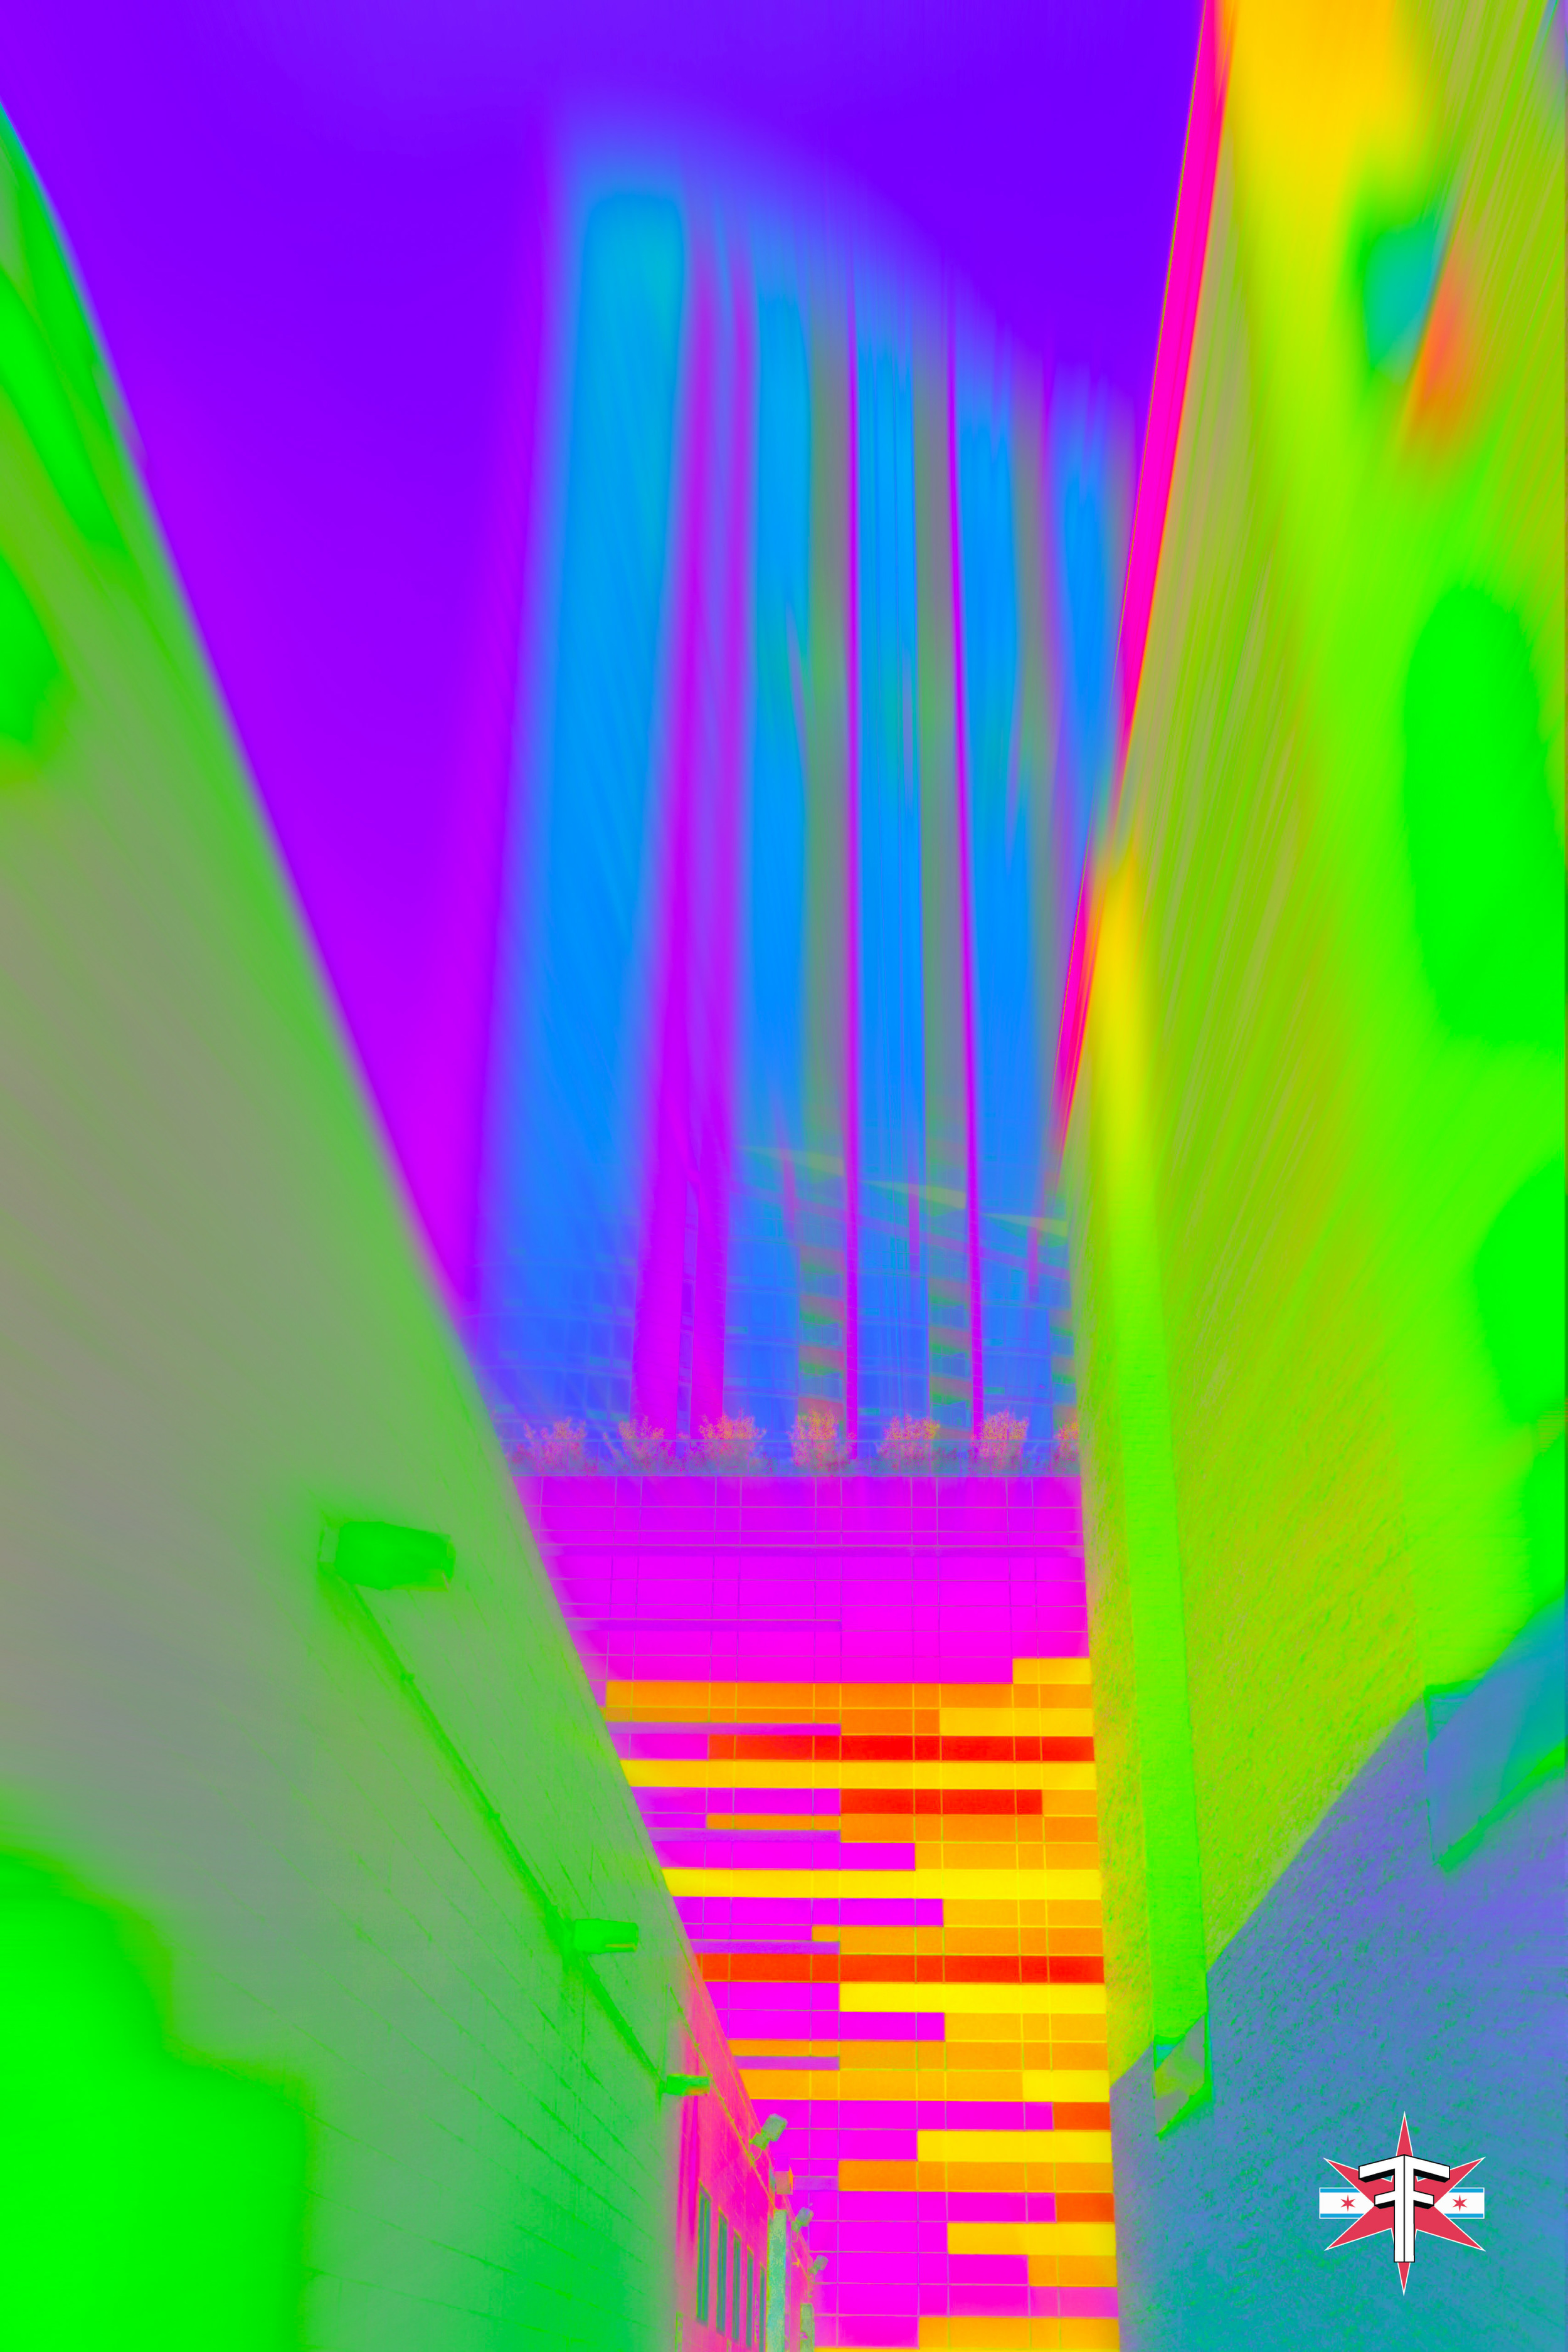 chicago art abstract eric formato photography color travel cityscape architecture saturated citycapes bright vibrant artistic-62-2.jpg